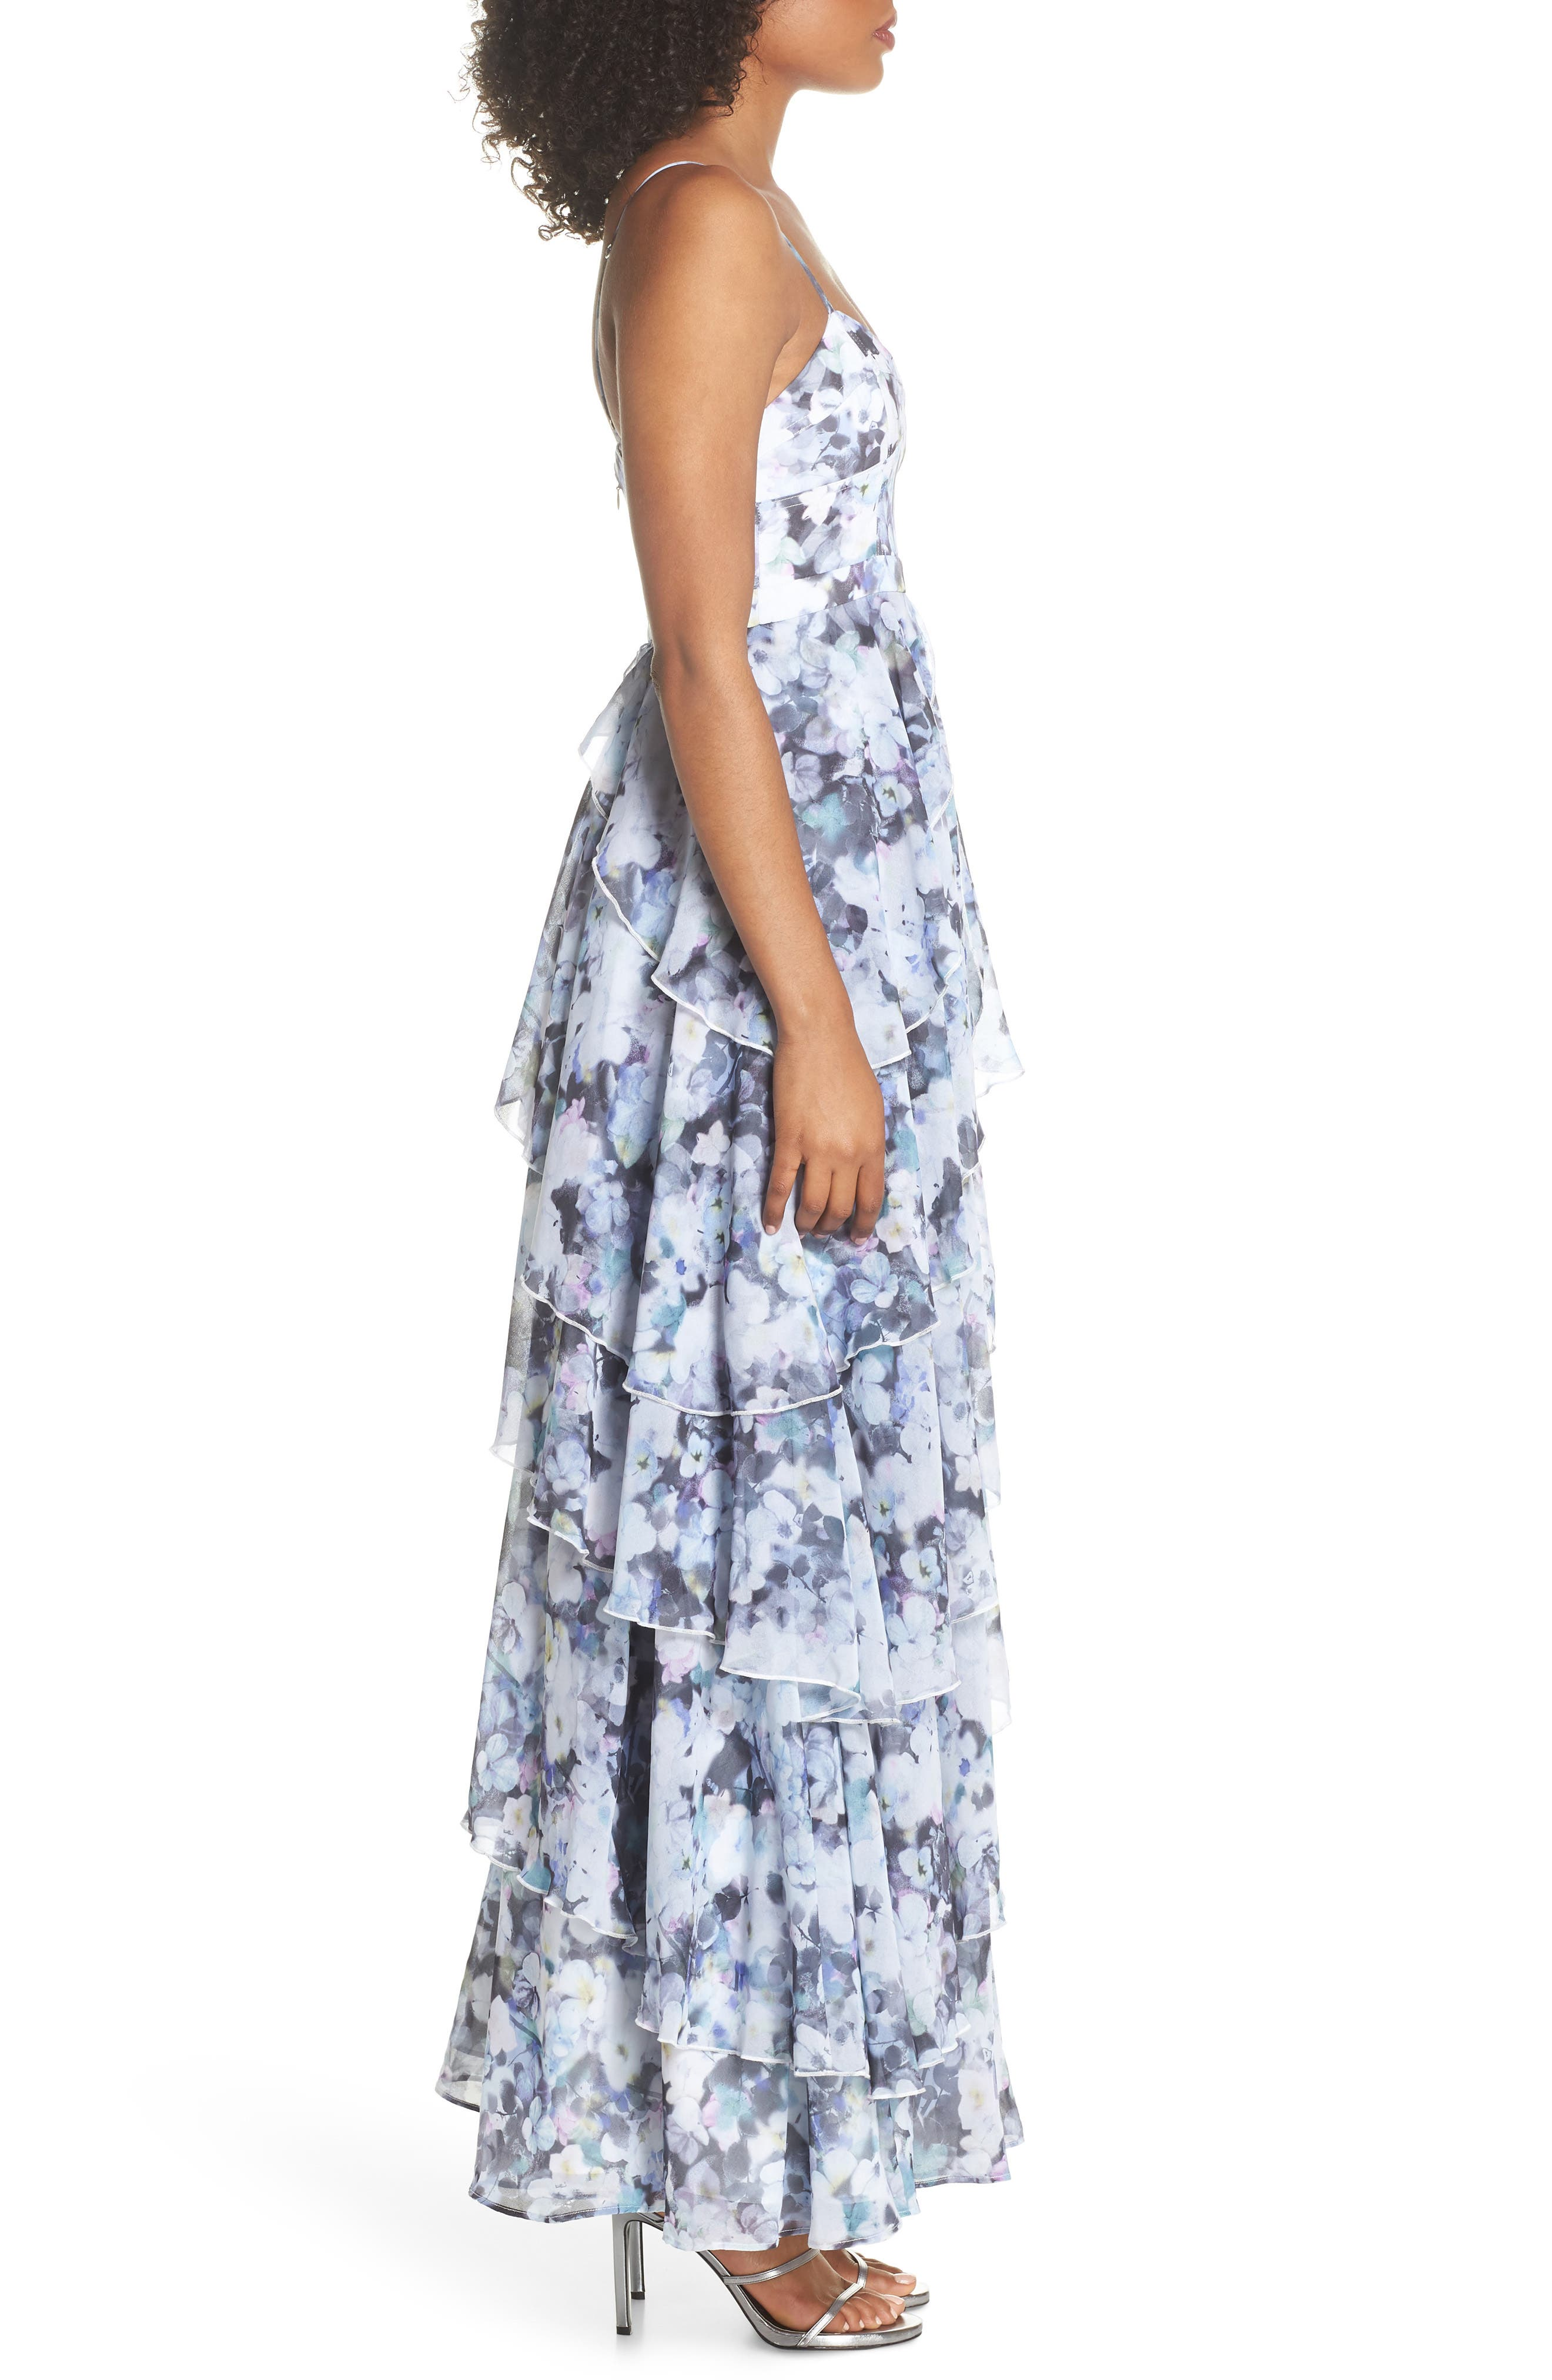 Catherine Floral Print Gown,                             Alternate thumbnail 3, color,                             450